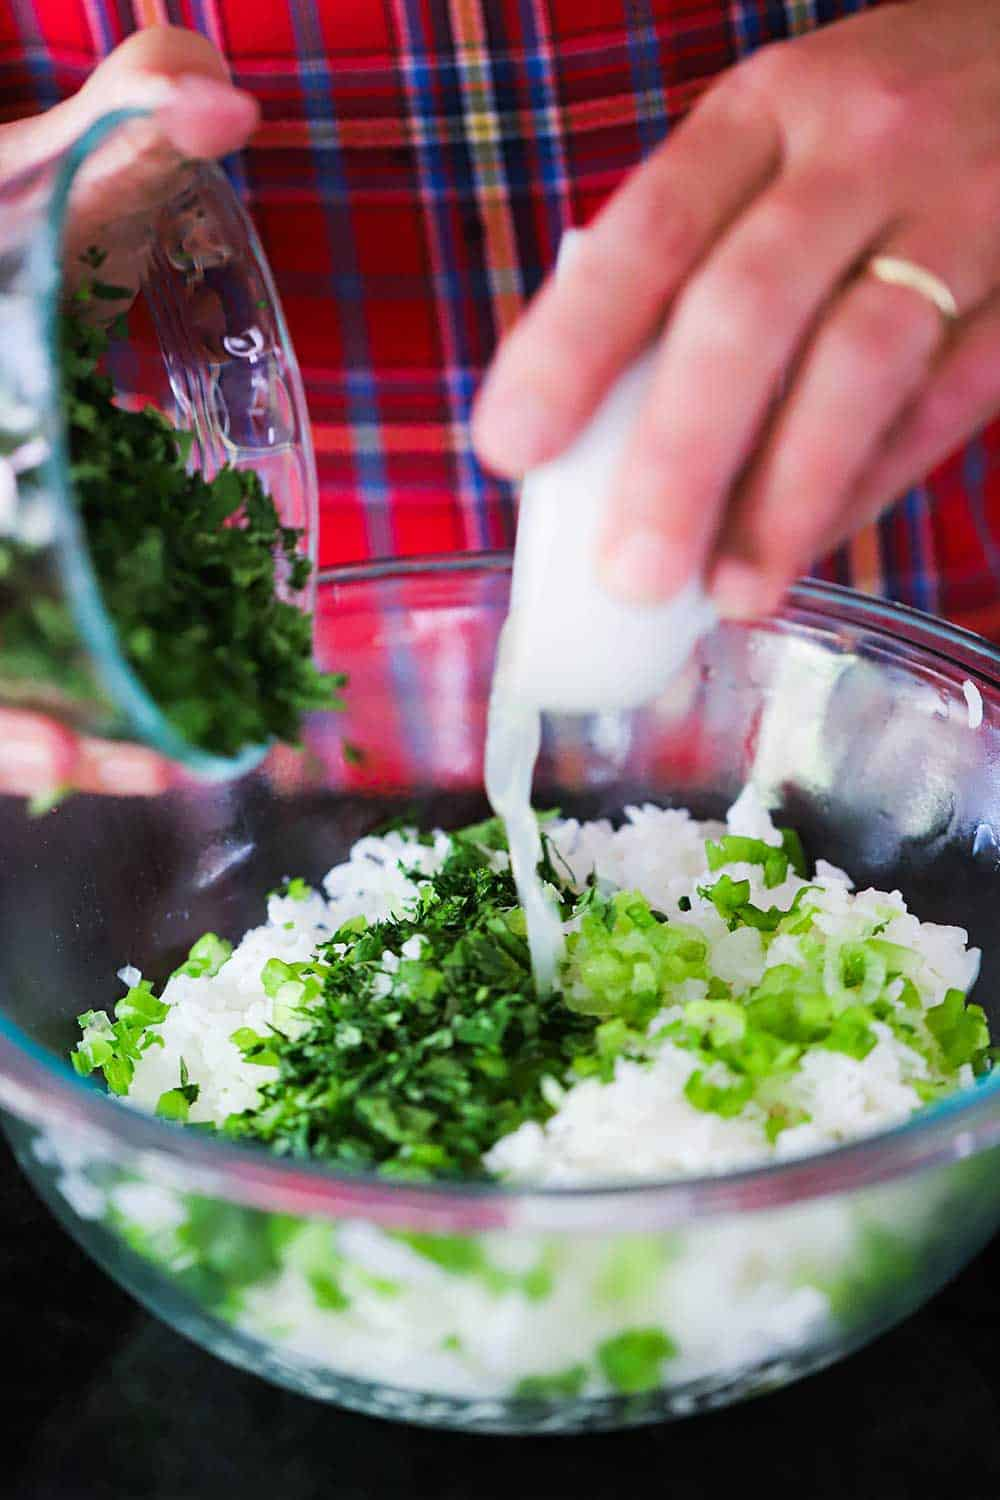 Two hands pouring chopped cilantro and fresh lime juice into a bowl filled with cooked rice and chopped scallions.